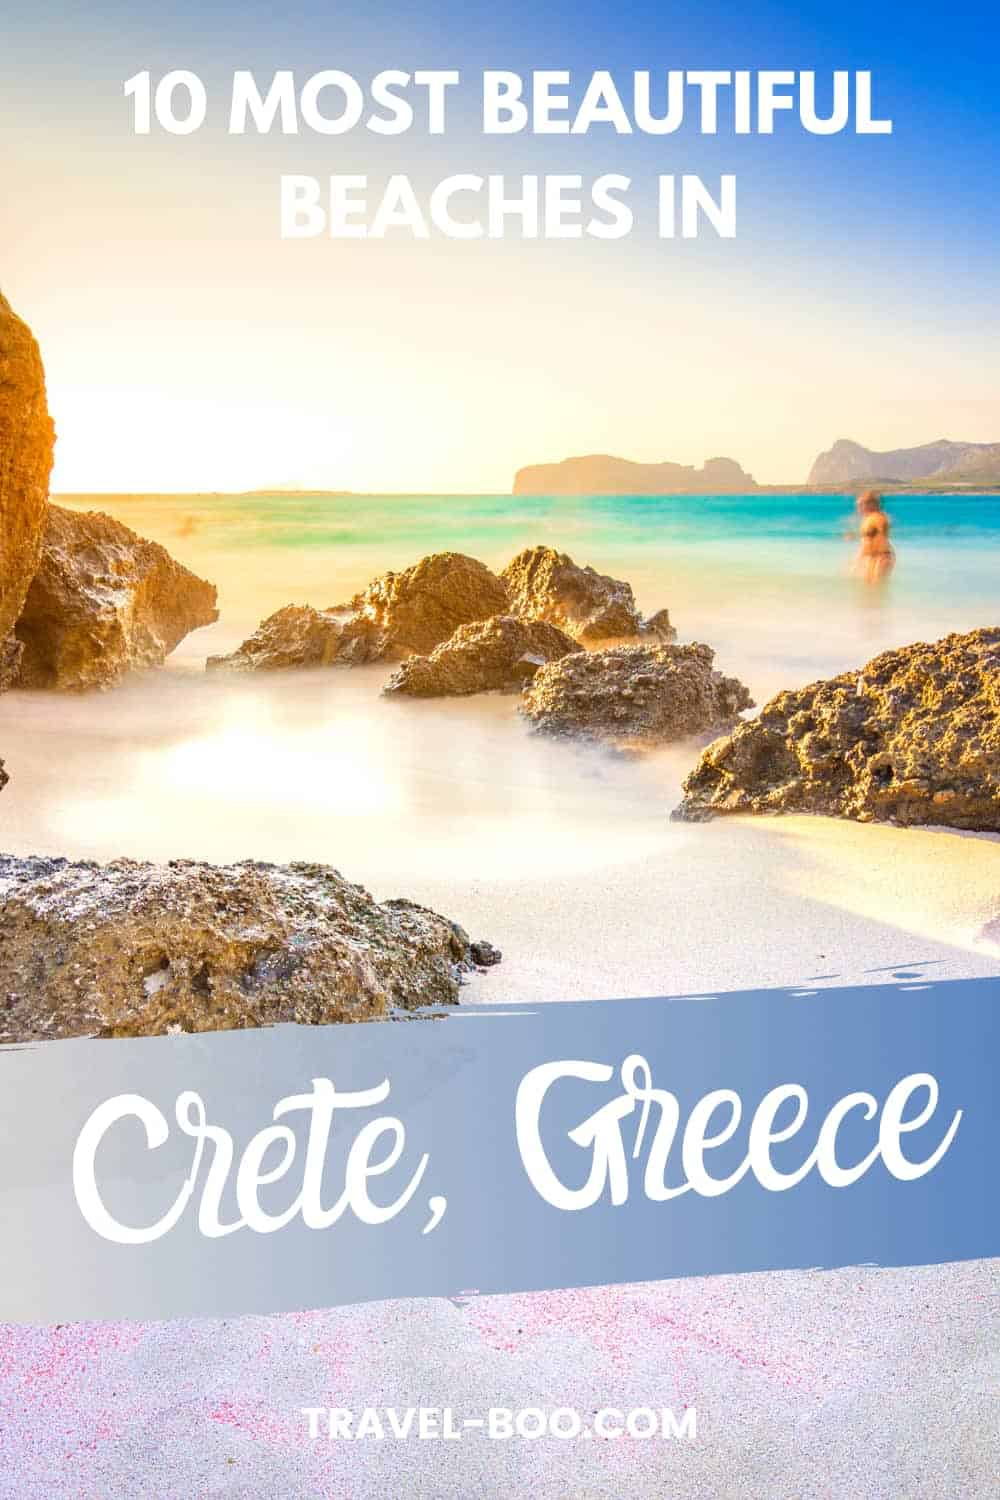 Visiting Crete, Greece? Don't miss out on these 10 most beautiful beaches in Crete! Crete Travel | Crete Travel Guide | Crete Travel Greece | Crete Travel Tips | Greece Travel | Greece Travel Islands | Greece Travel Guide #cretetravel #greecetravel #greecetravelislands